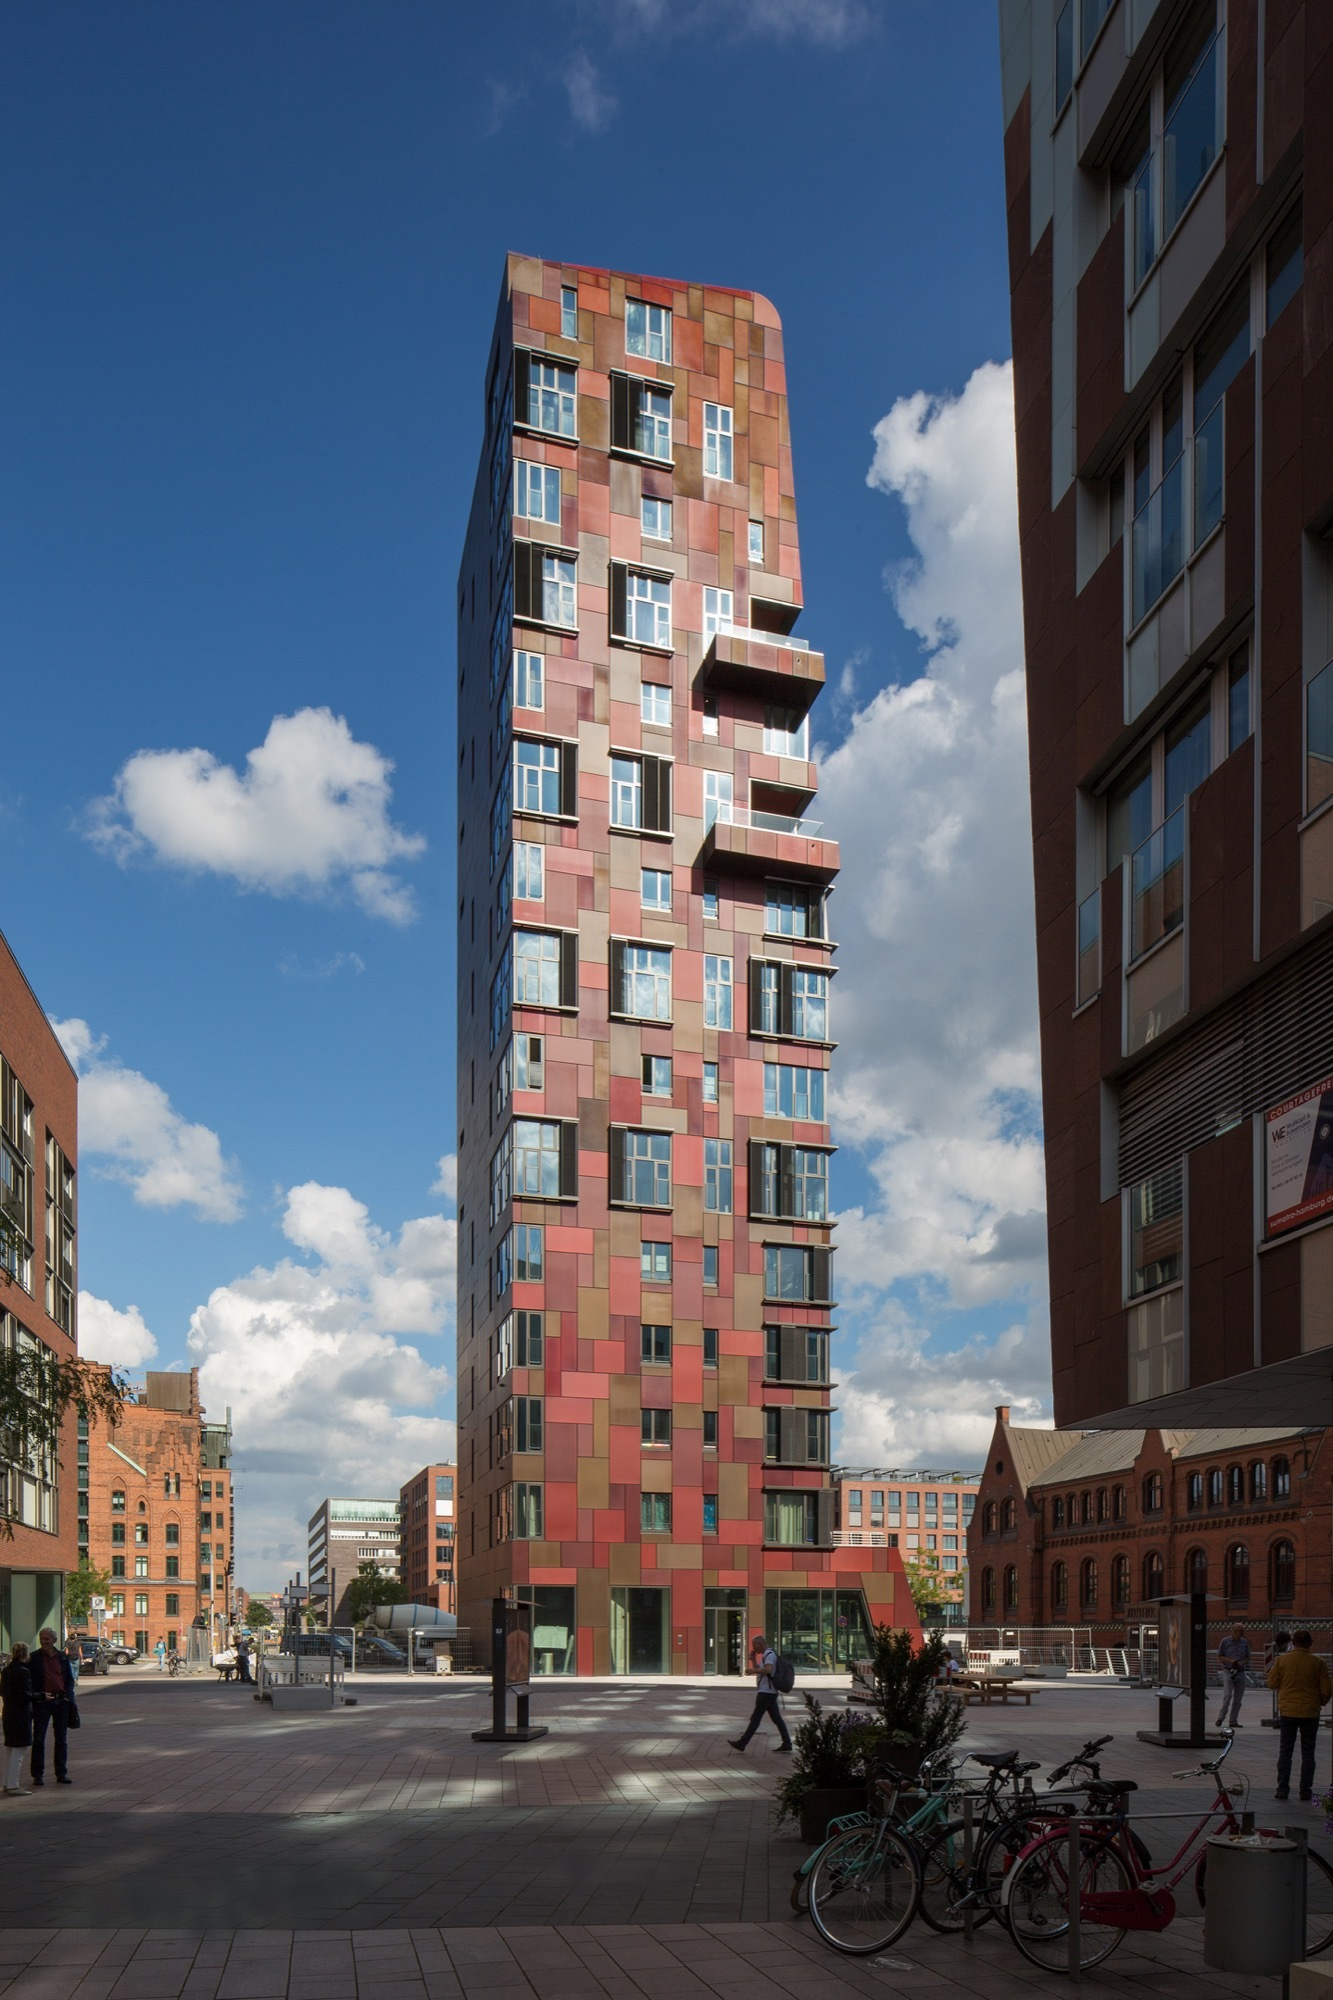 Tower Hamburg Cinnamon Tower And Pavilion / Bolles + Wilson | Archdaily